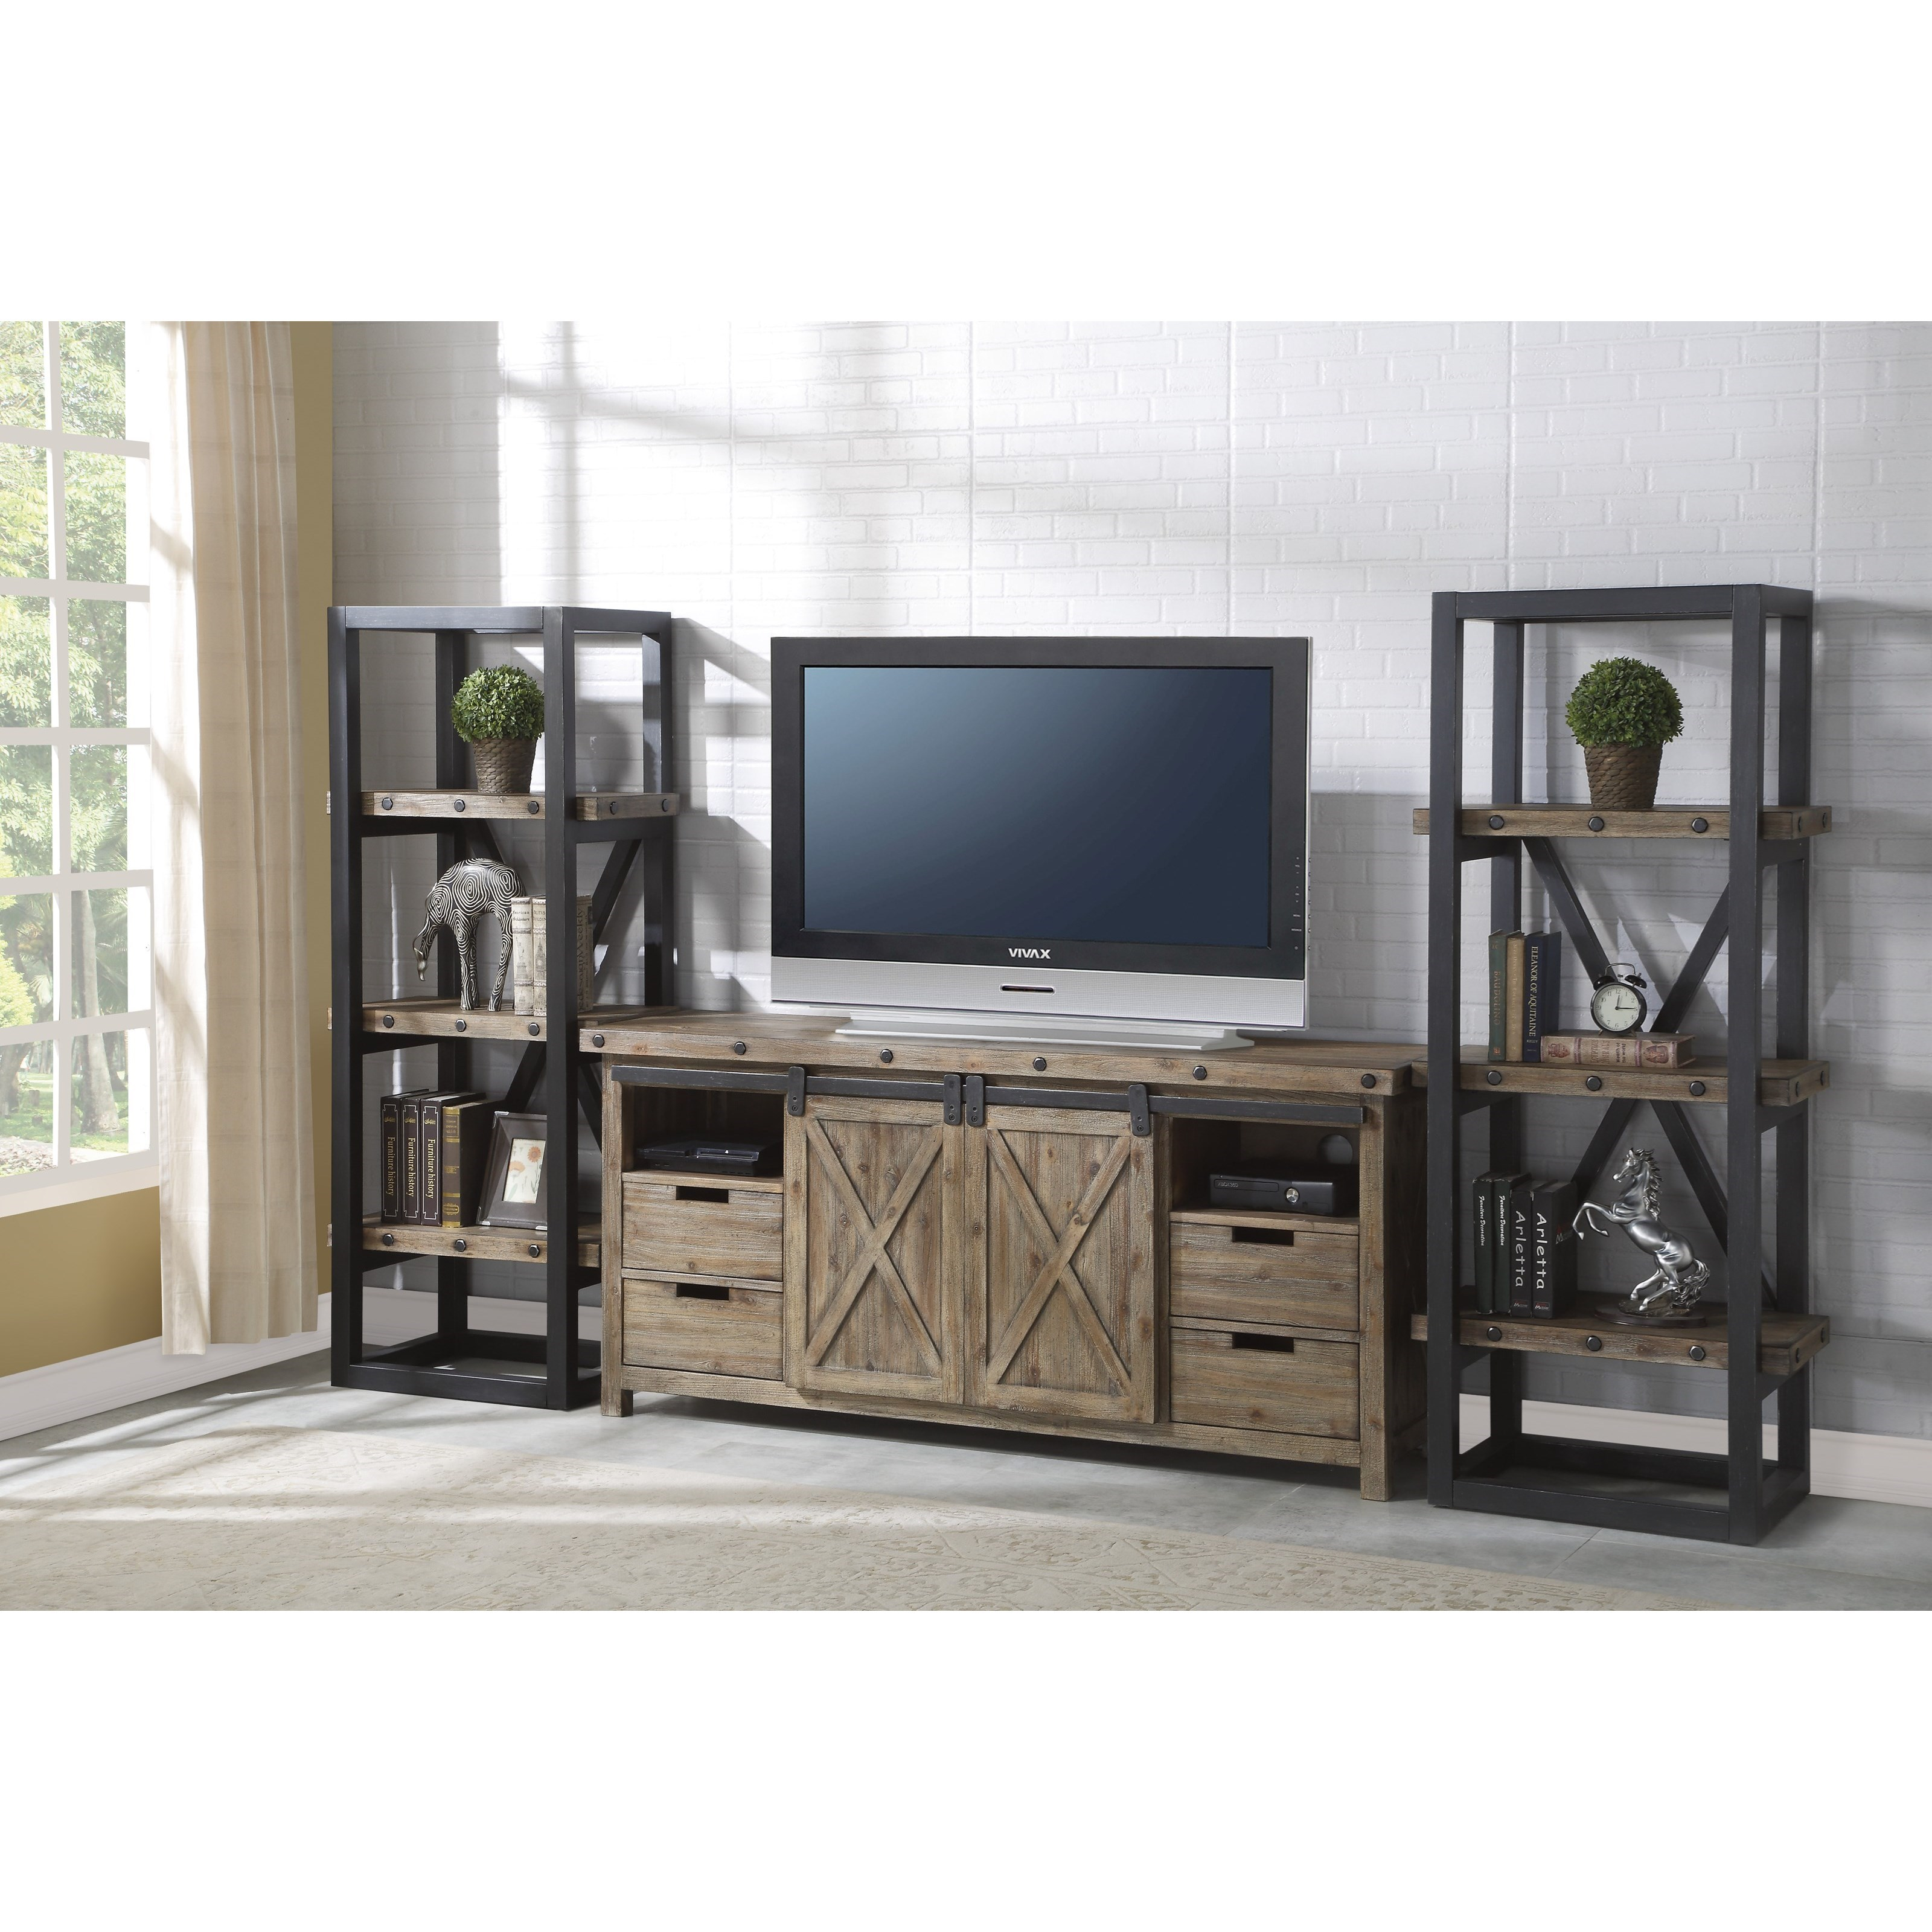 Carpenter Entertainment Set by Flexsteel Wynwood Collection at Turk Furniture